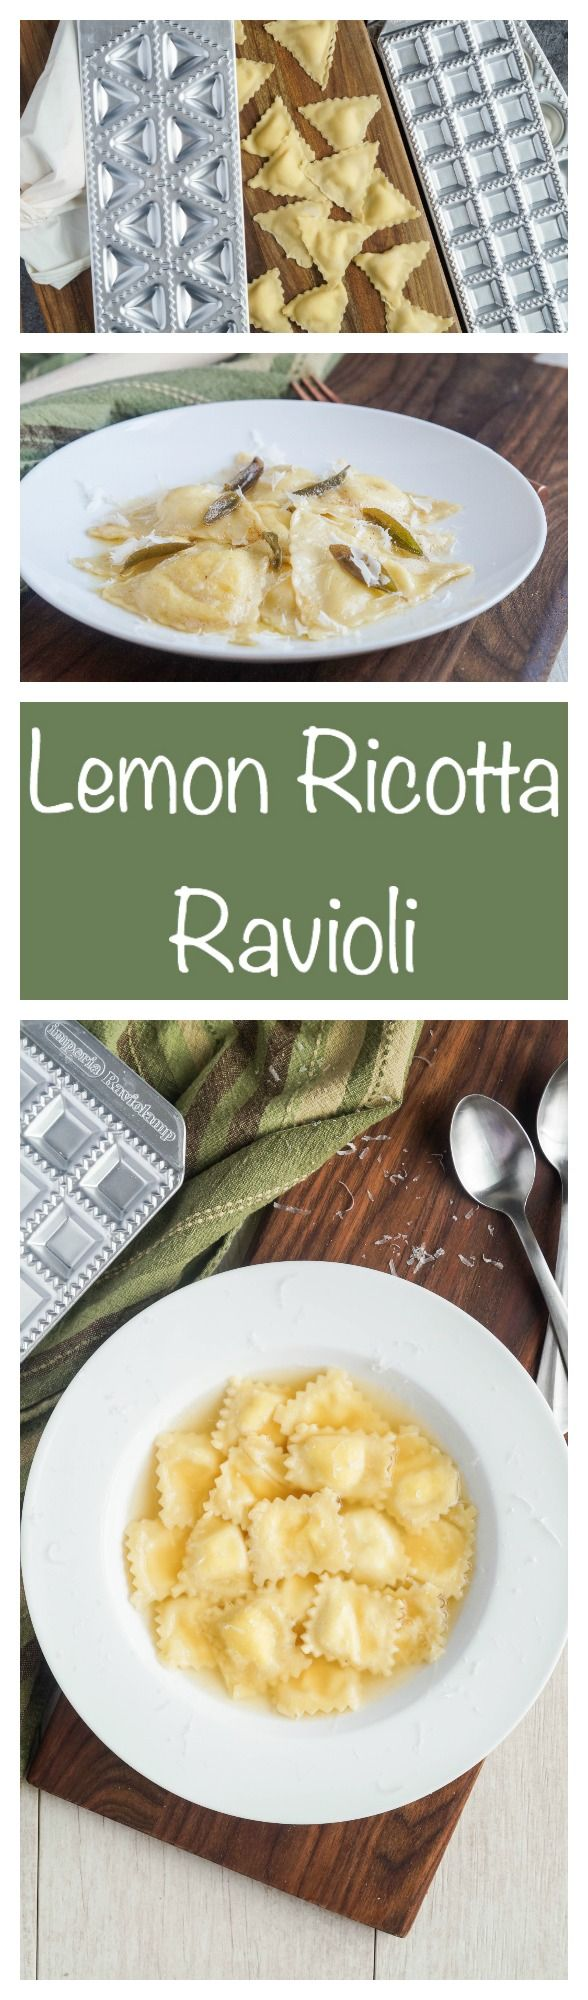 Lemon Ricotta Ravioli, homemade  ravioli is fun and easy, plus learn to use three ravioli attachments